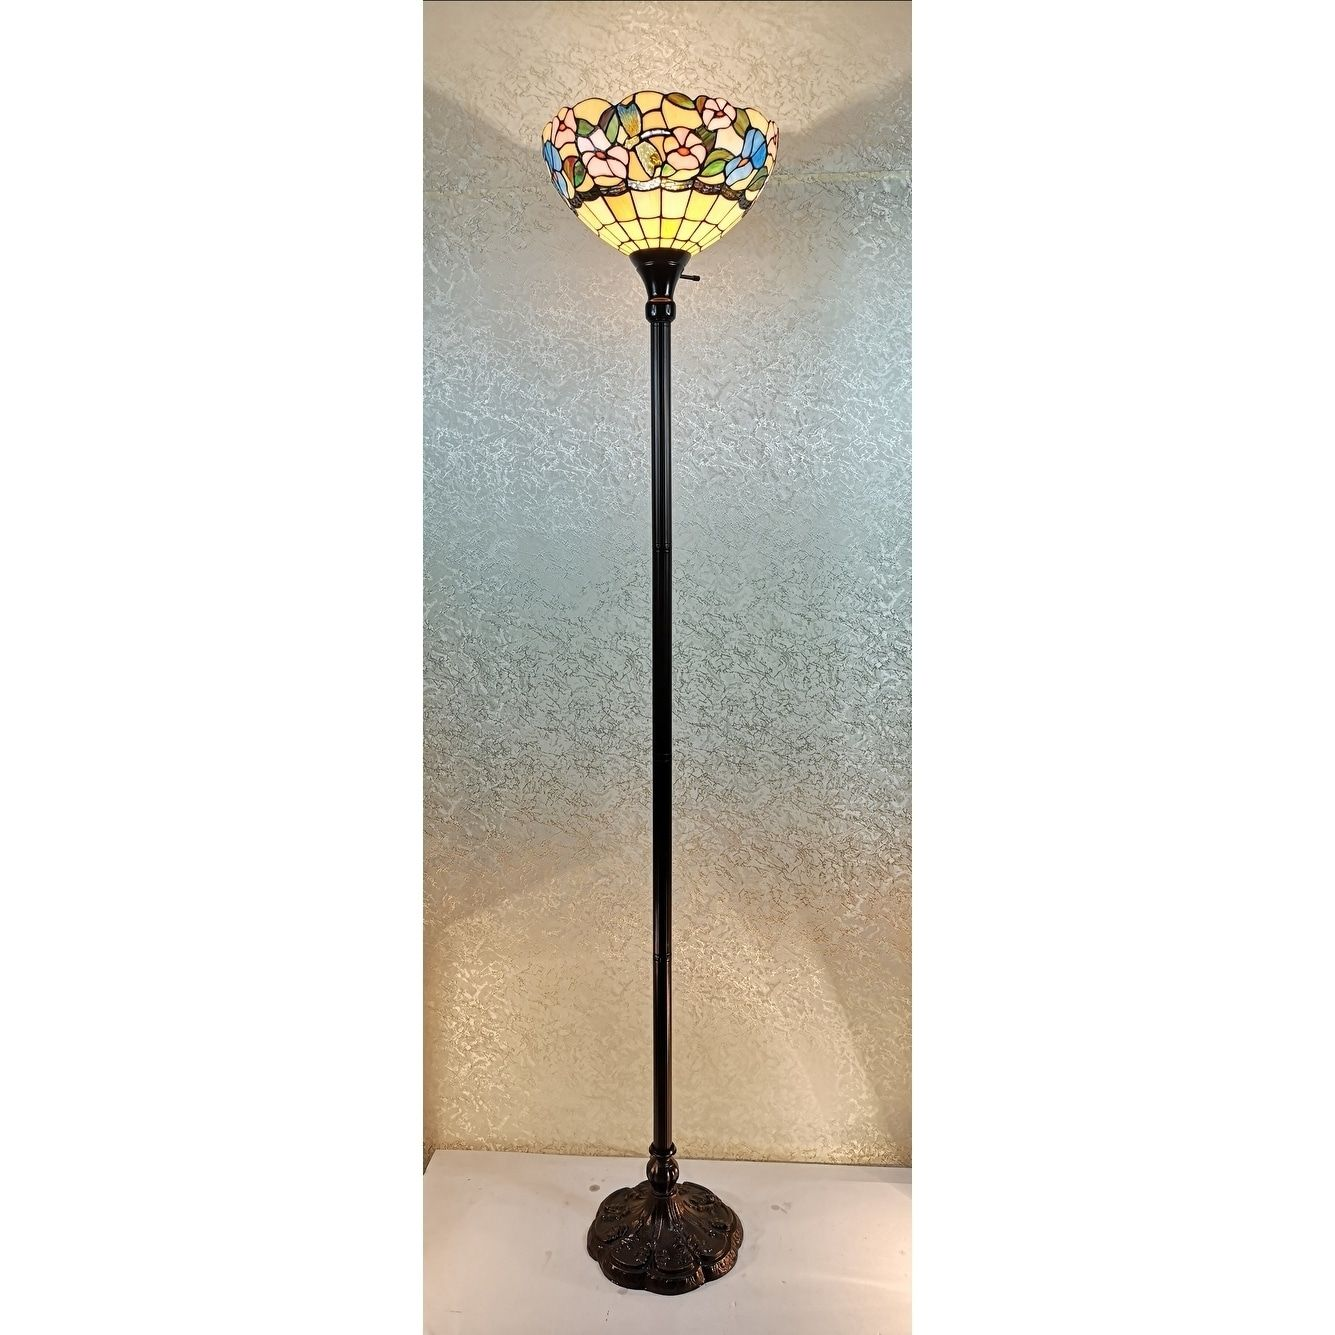 Tiffany Style Floor Lamp 70 Tall Torchiere Standing Dragonfly